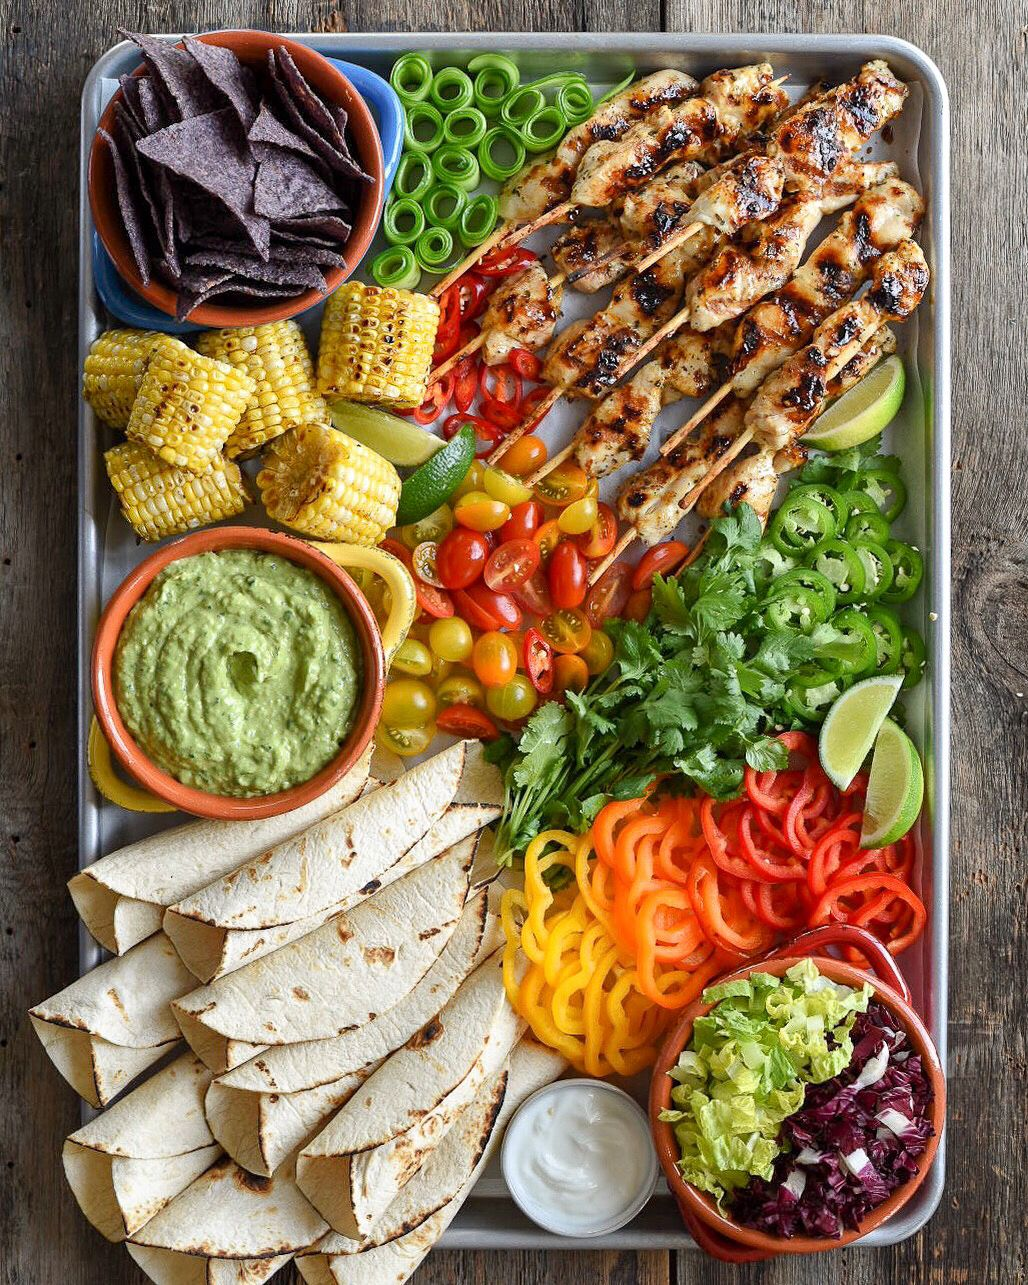 Grilled Chicken Tortillas with Spicy Guacamole